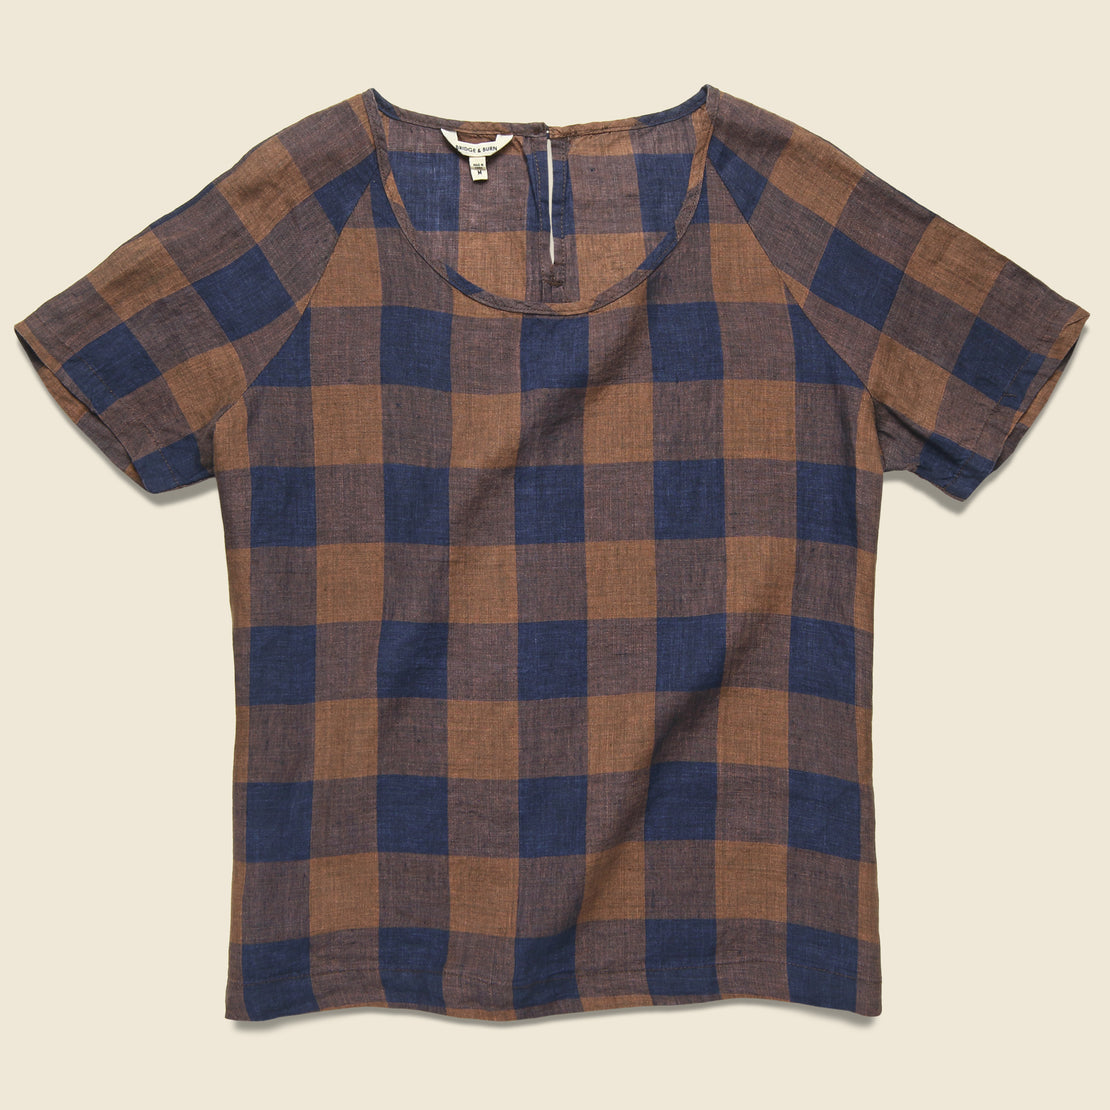 Bridge & Burn Reese Top - Navy/Rust Gingham